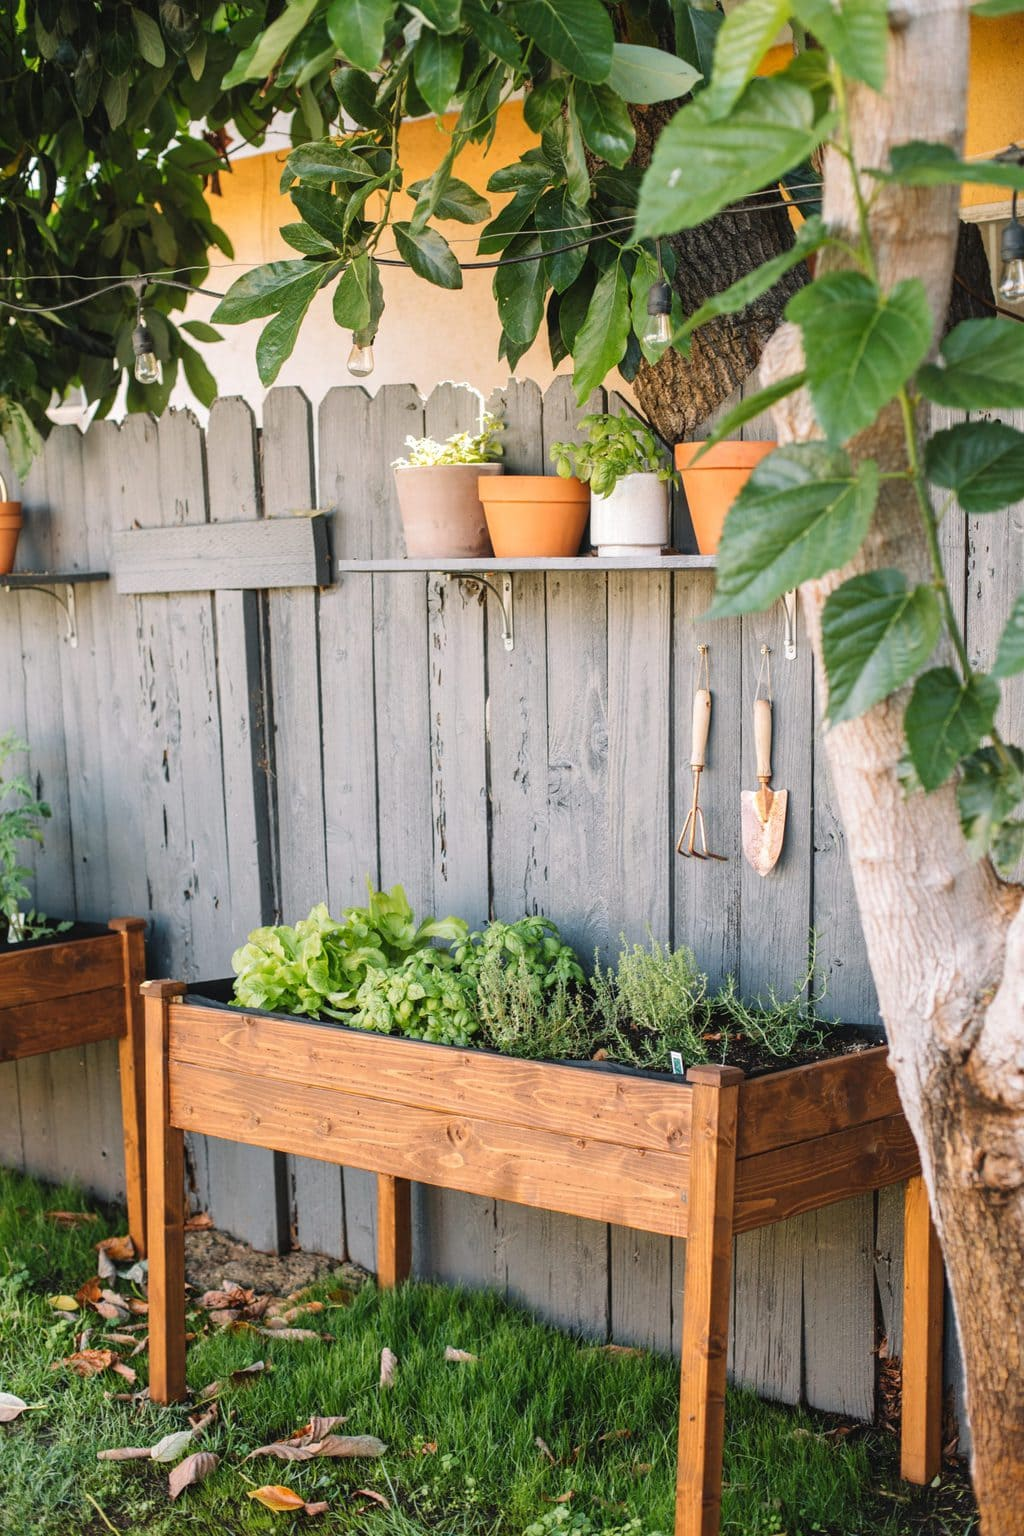 Two raised wooden planters with herbs and lettuce inside.